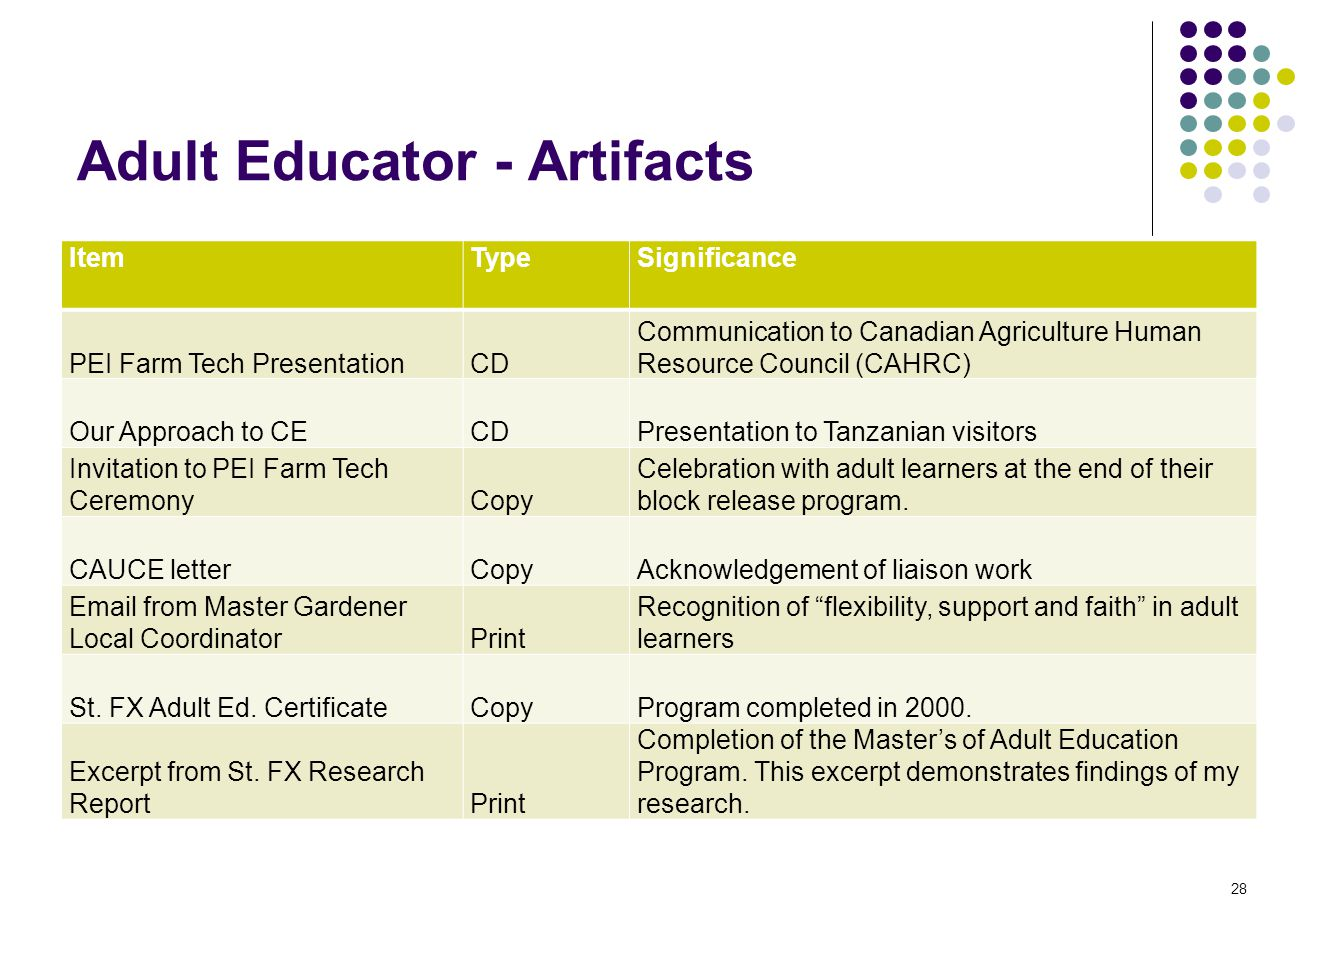 Adult Educator - Artifacts 28 ItemTypeSignificance PEI Farm Tech PresentationCD Communication to Canadian Agriculture Human Resource Council (CAHRC) Our Approach to CECDPresentation to Tanzanian visitors Invitation to PEI Farm Tech CeremonyCopy Celebration with adult learners at the end of their block release program.